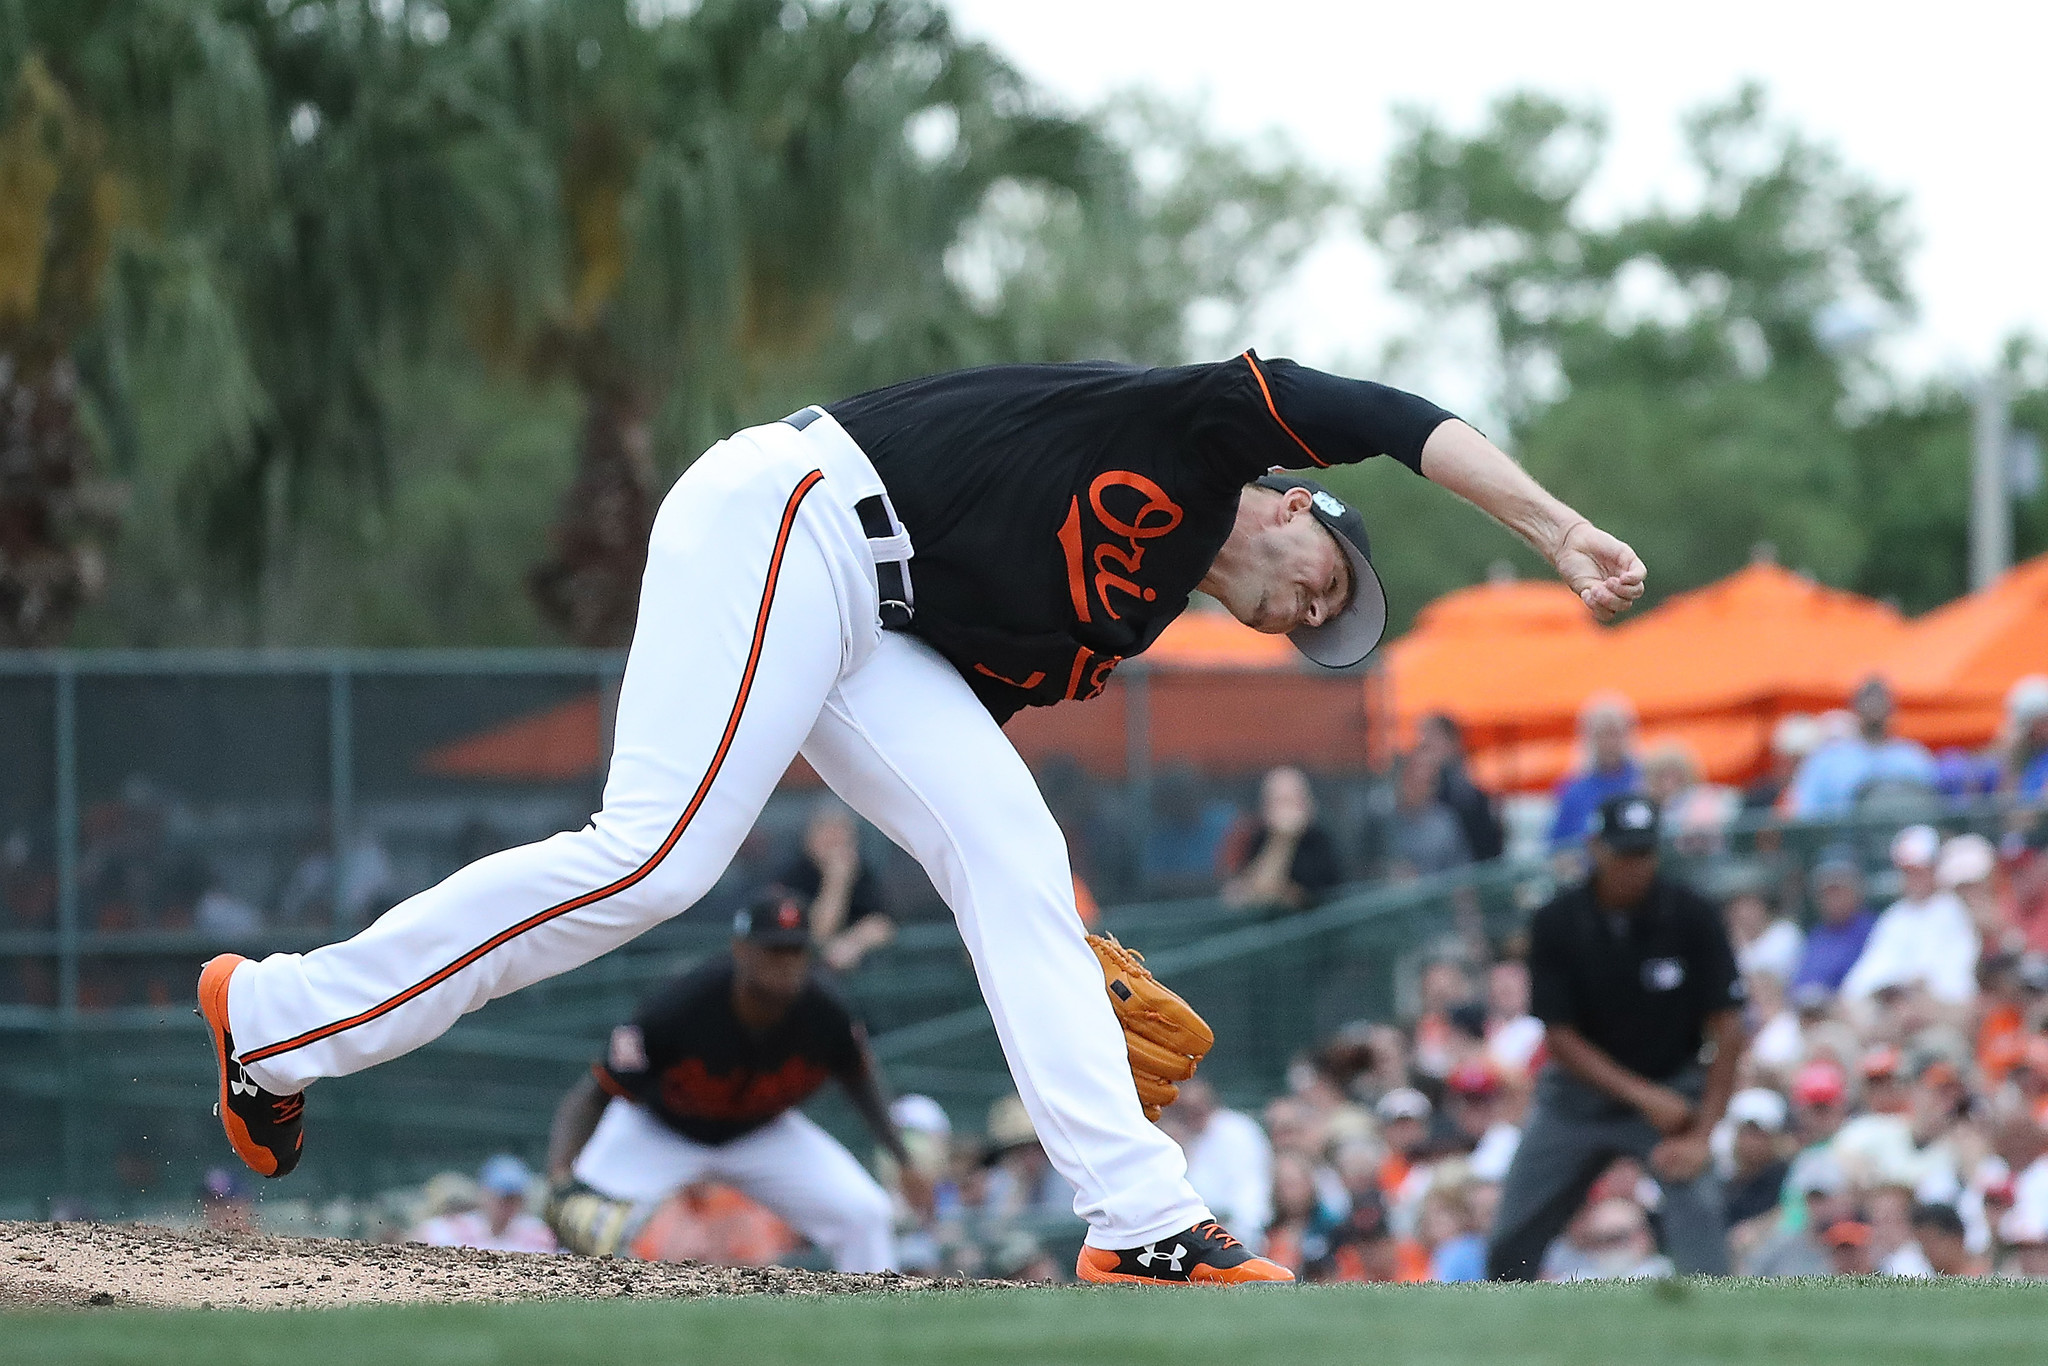 Bal-oliver-drake-s-rough-spring-creating-roster-quandary-for-orioles-20170321